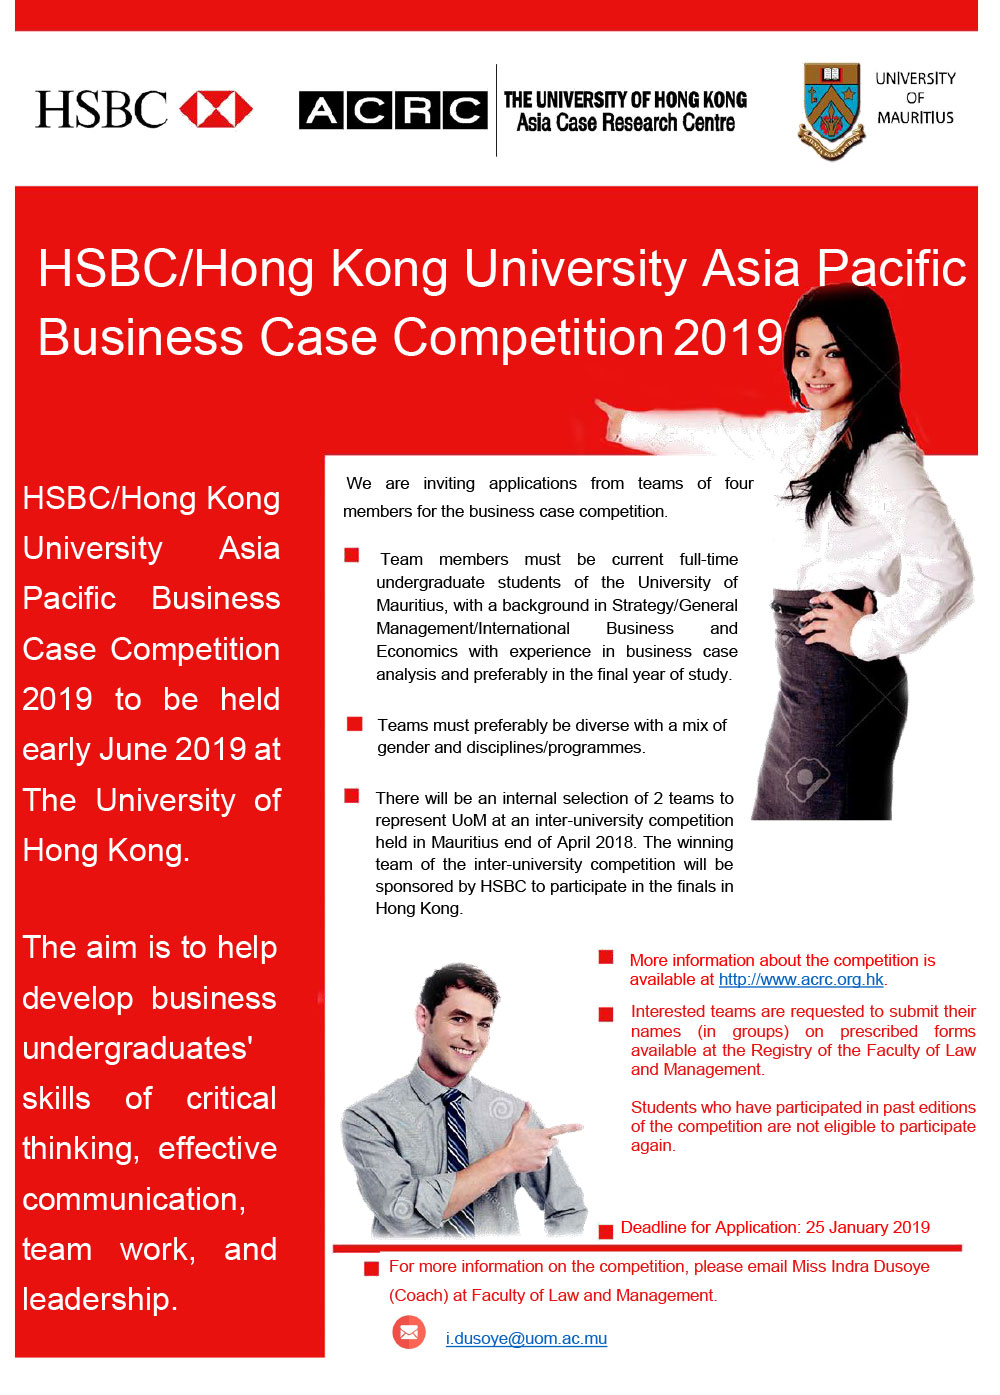 HSBC businesscasecompetition2019 Advert